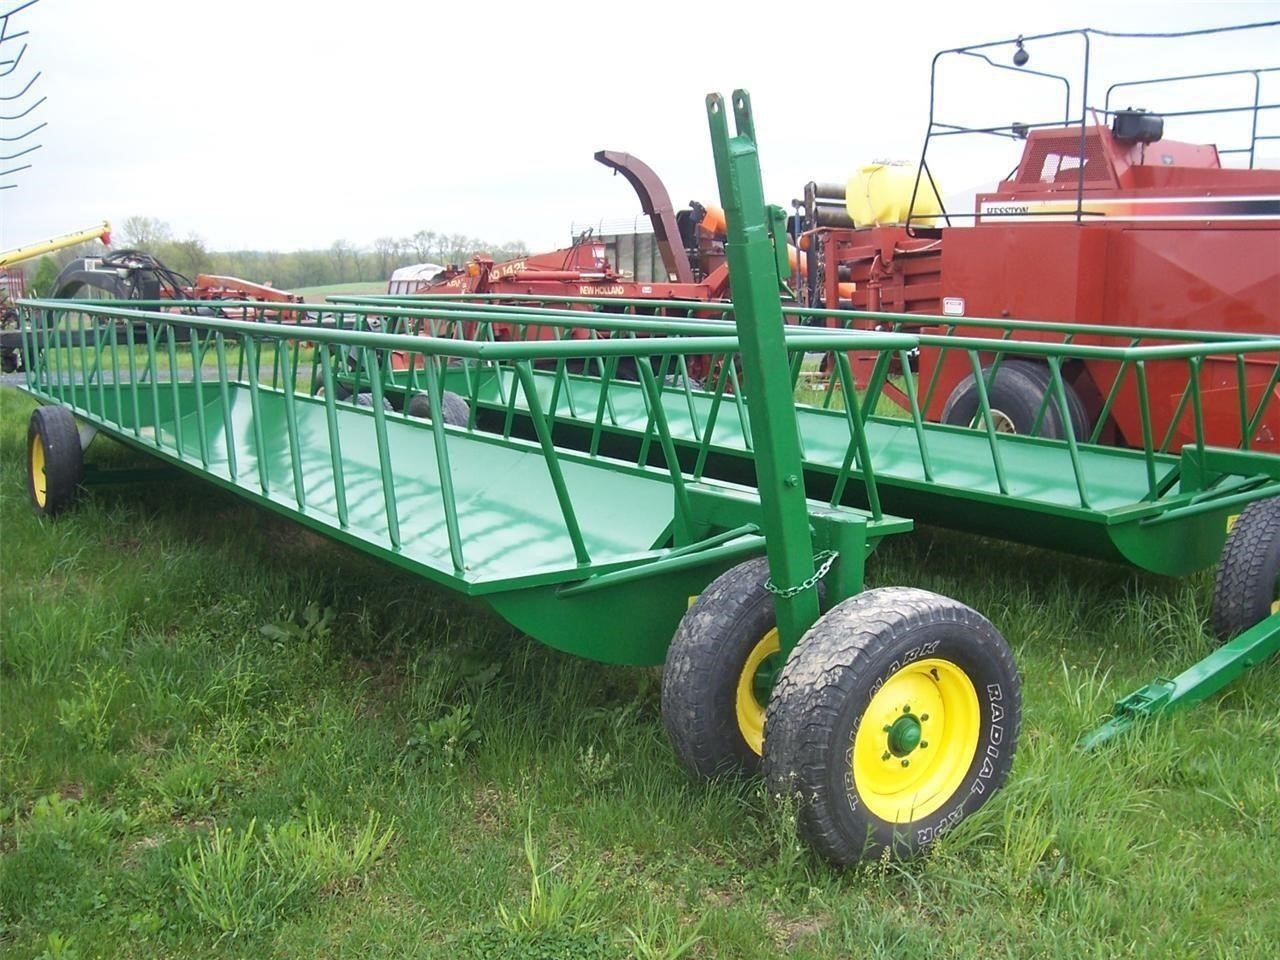 2021 Stoltzfus 516SK Bale Wagons and Trailer